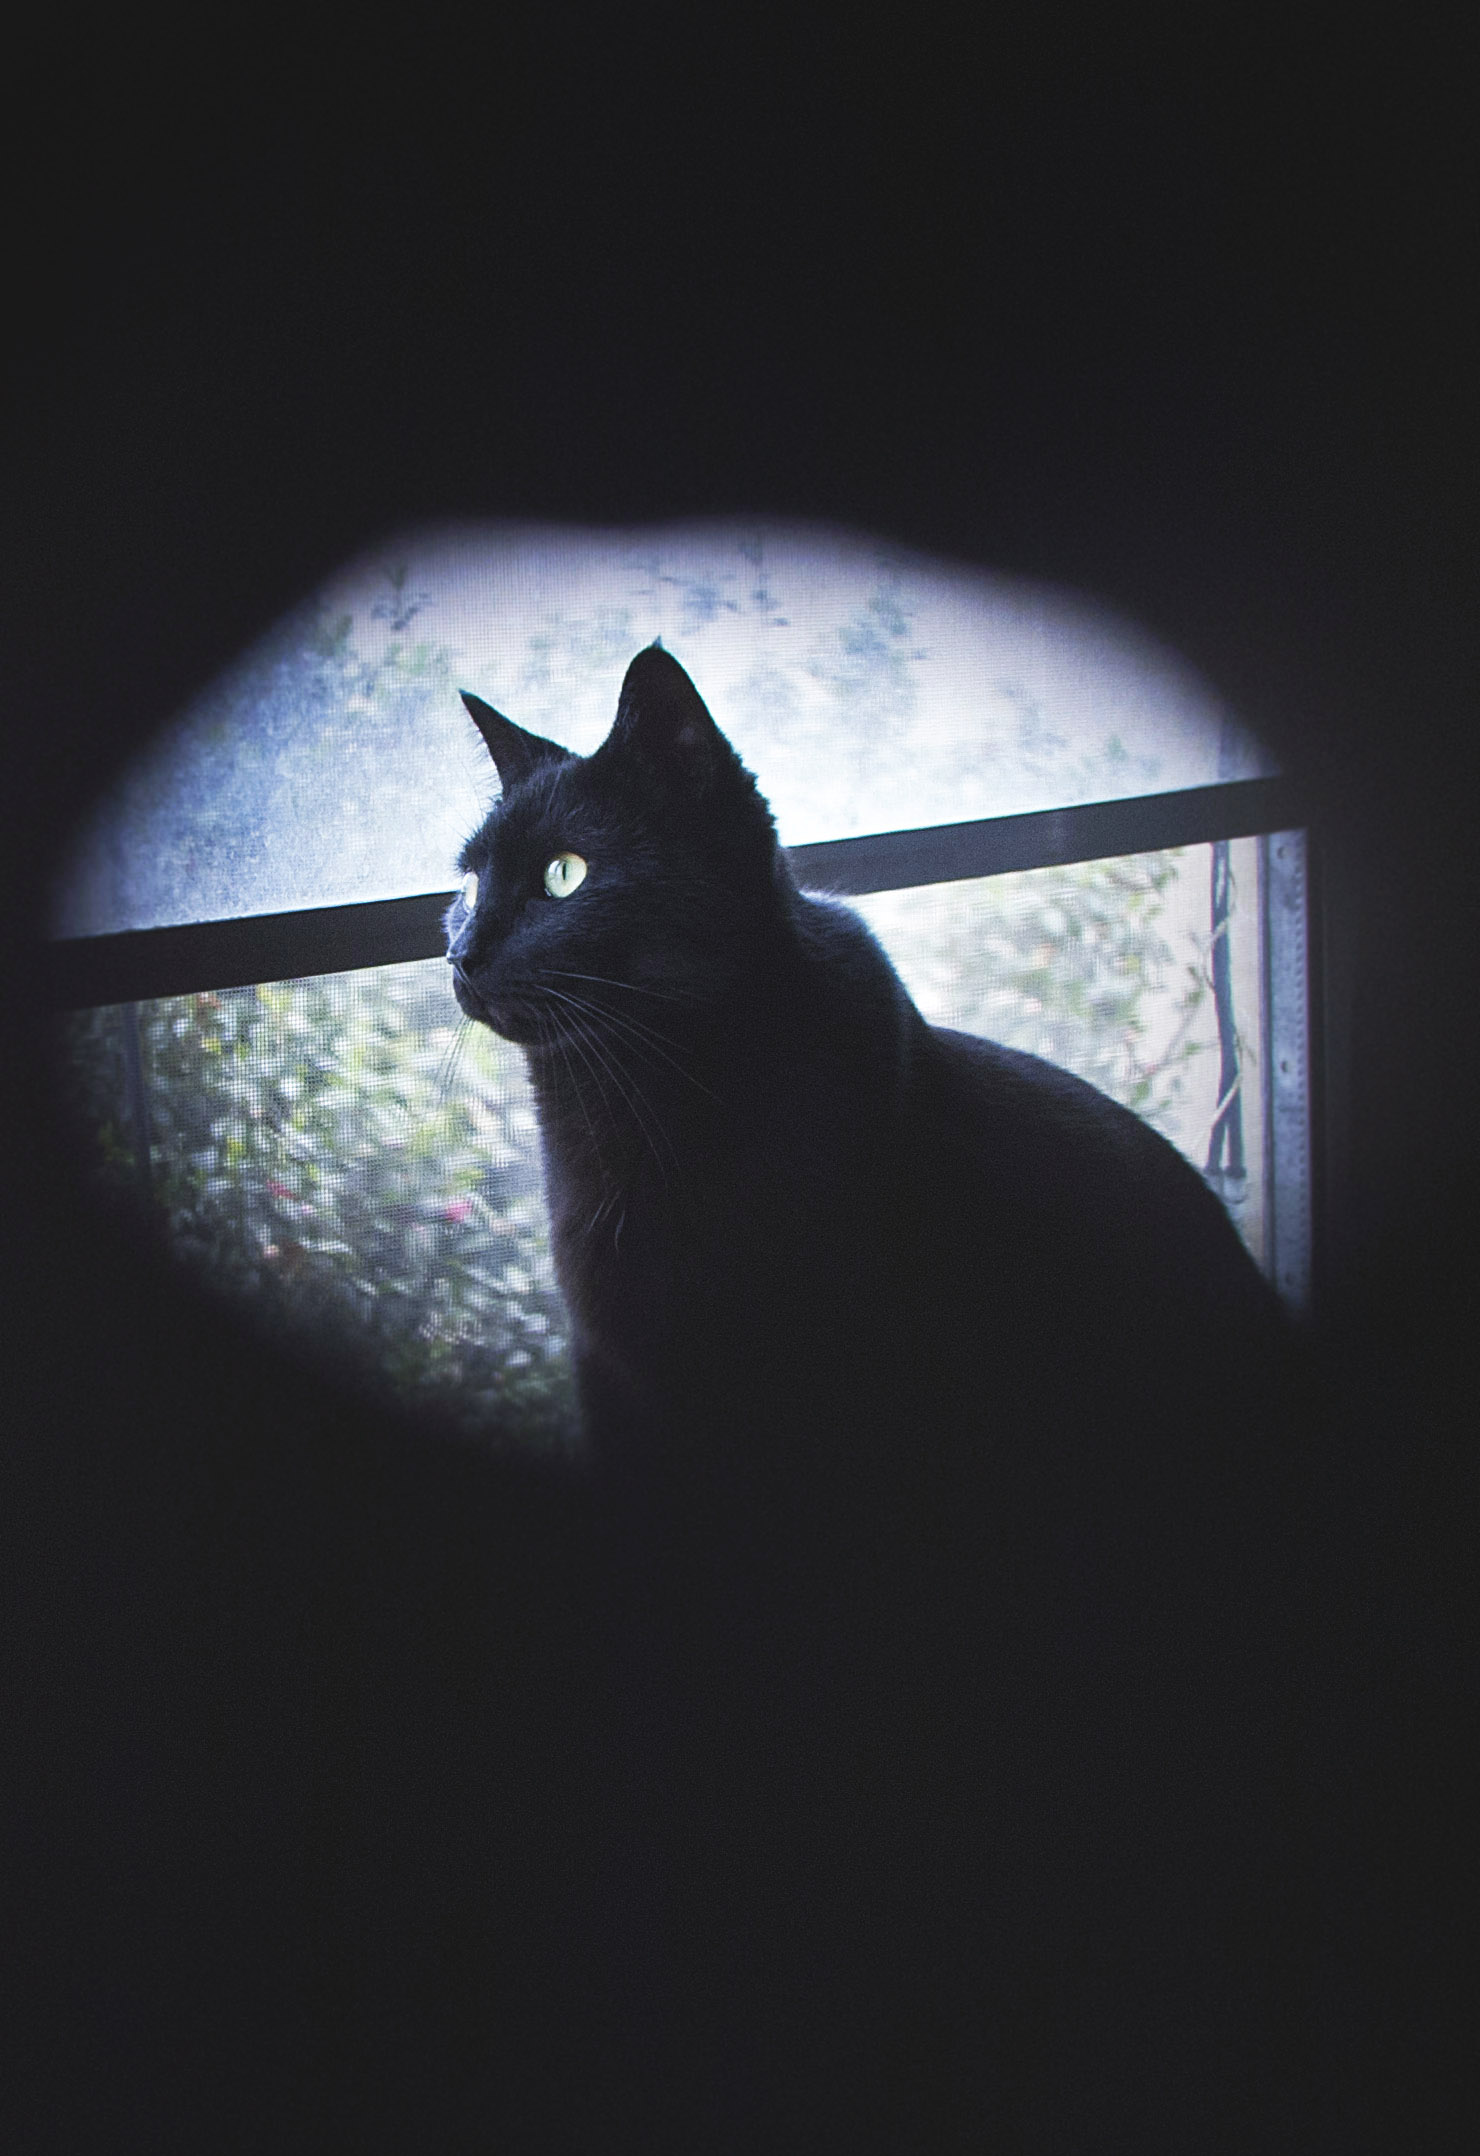 A peek through the hag stone... a black cat!